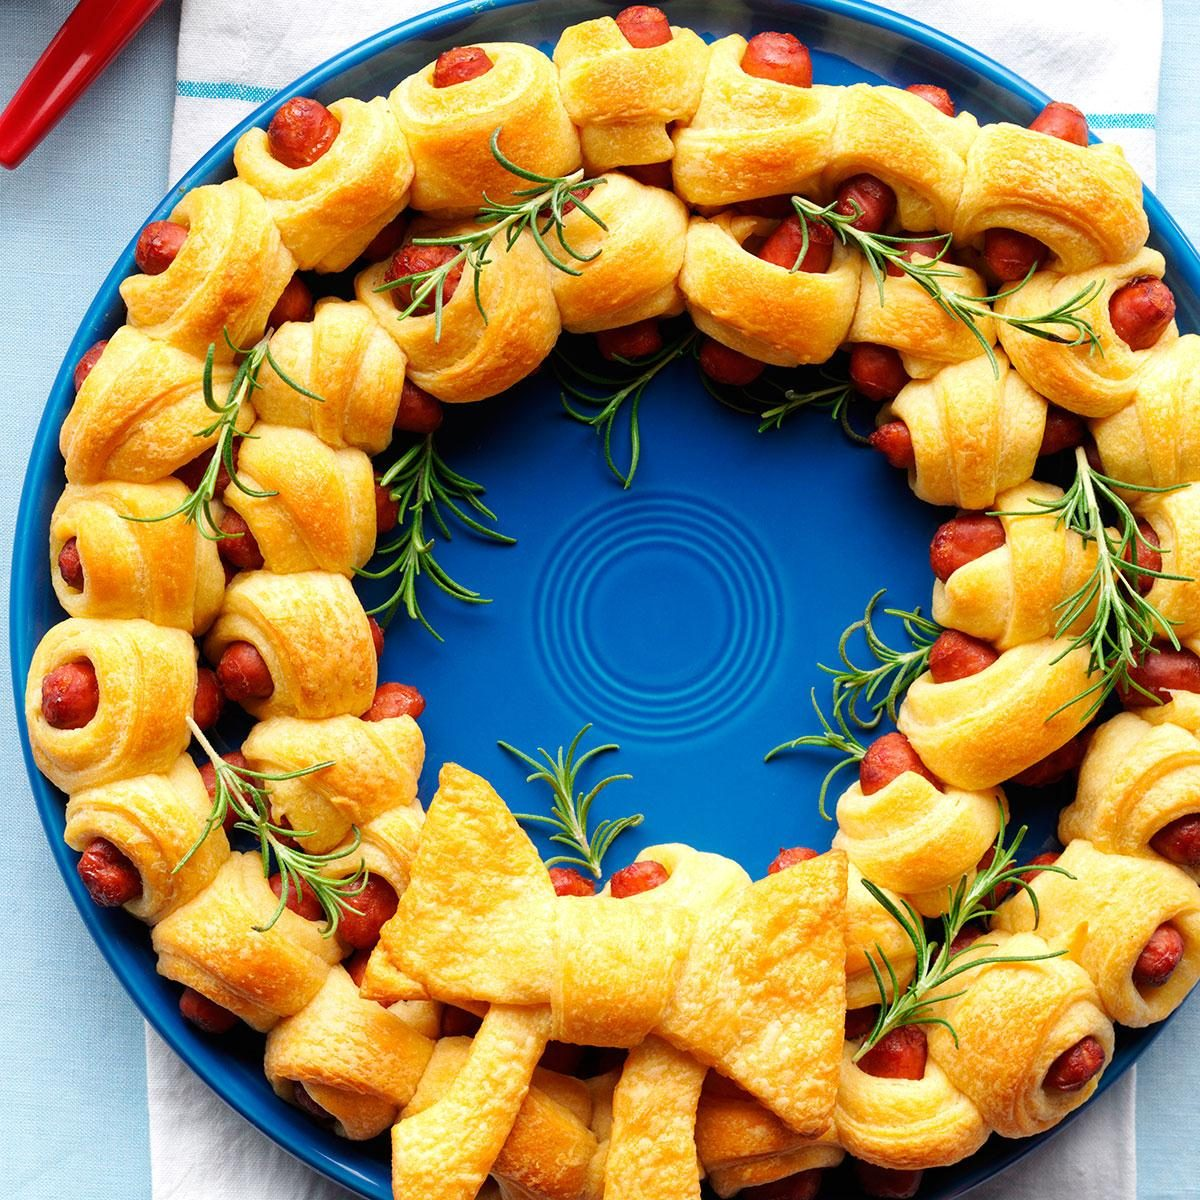 Cook Something Easy And Fast: Ring Of Piggies Recipe